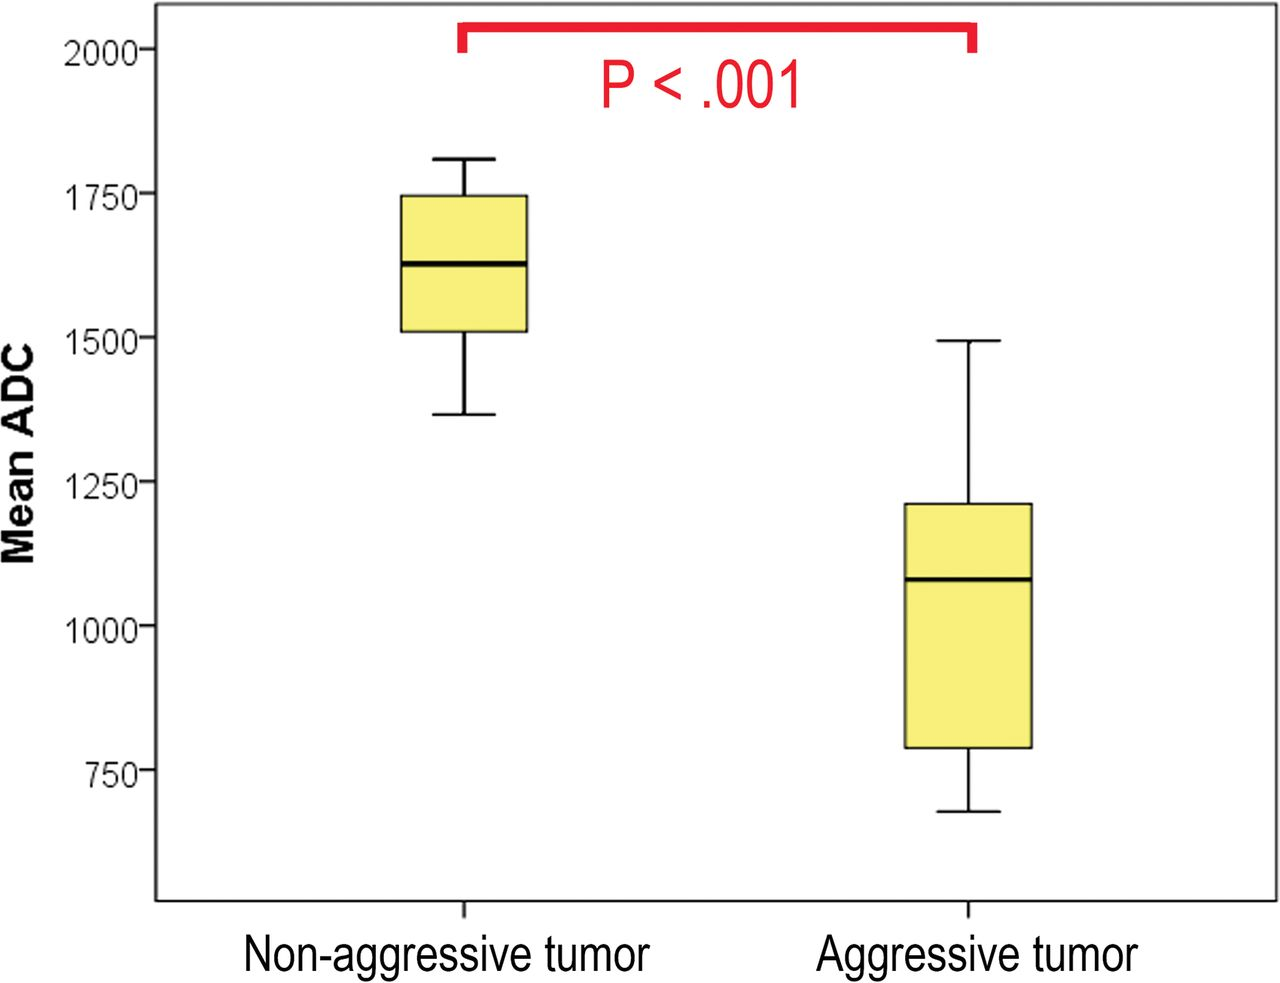 Role of the Apparent Diffusion Coefficient as a Predictor of Tumor